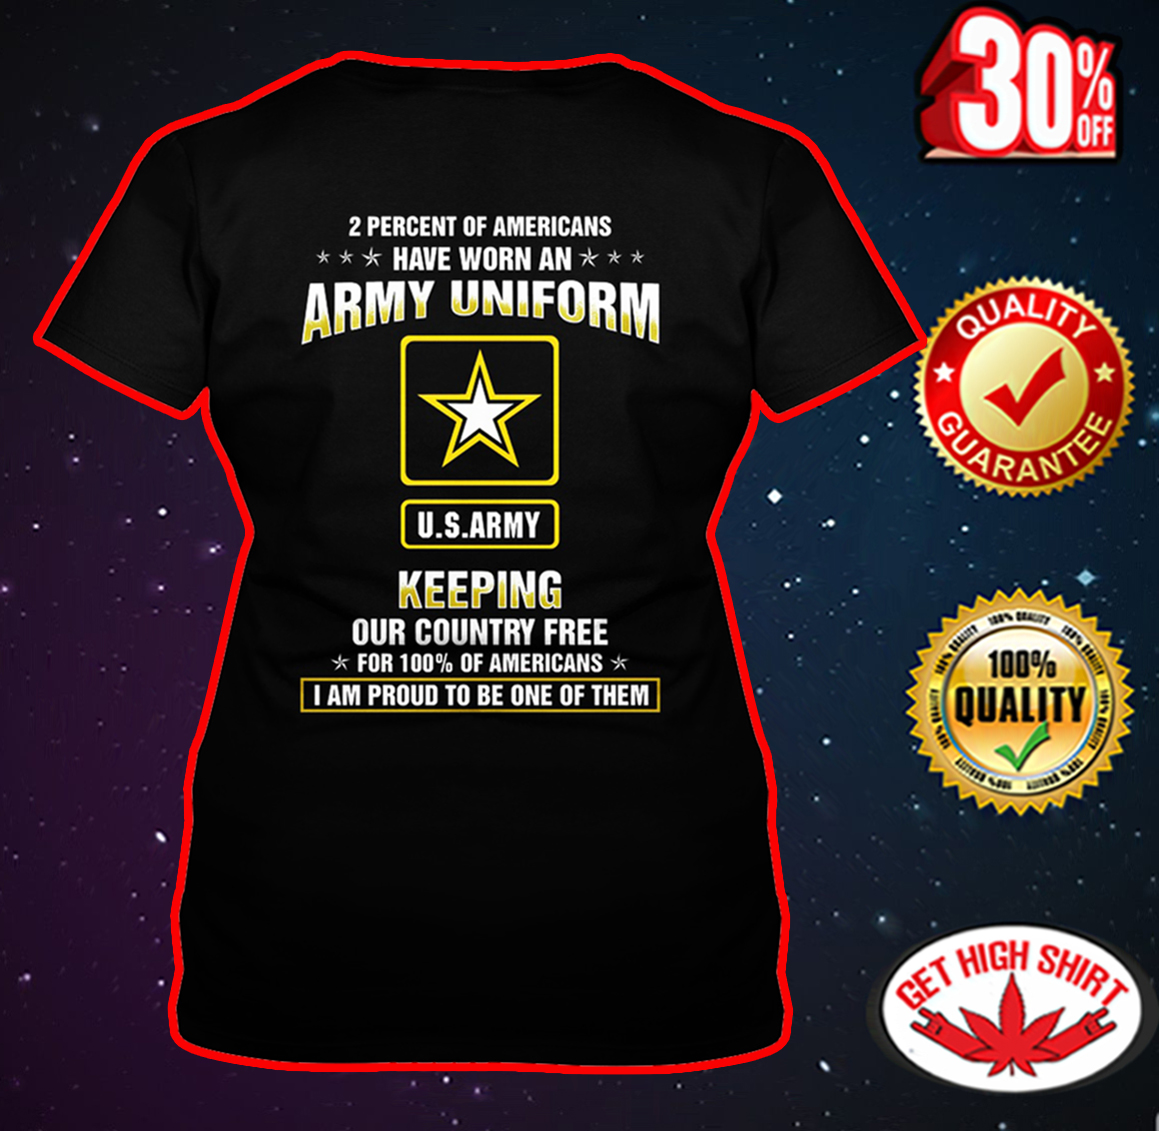 US Army 2 Percent of Americans have worn an Army uniform v-neck